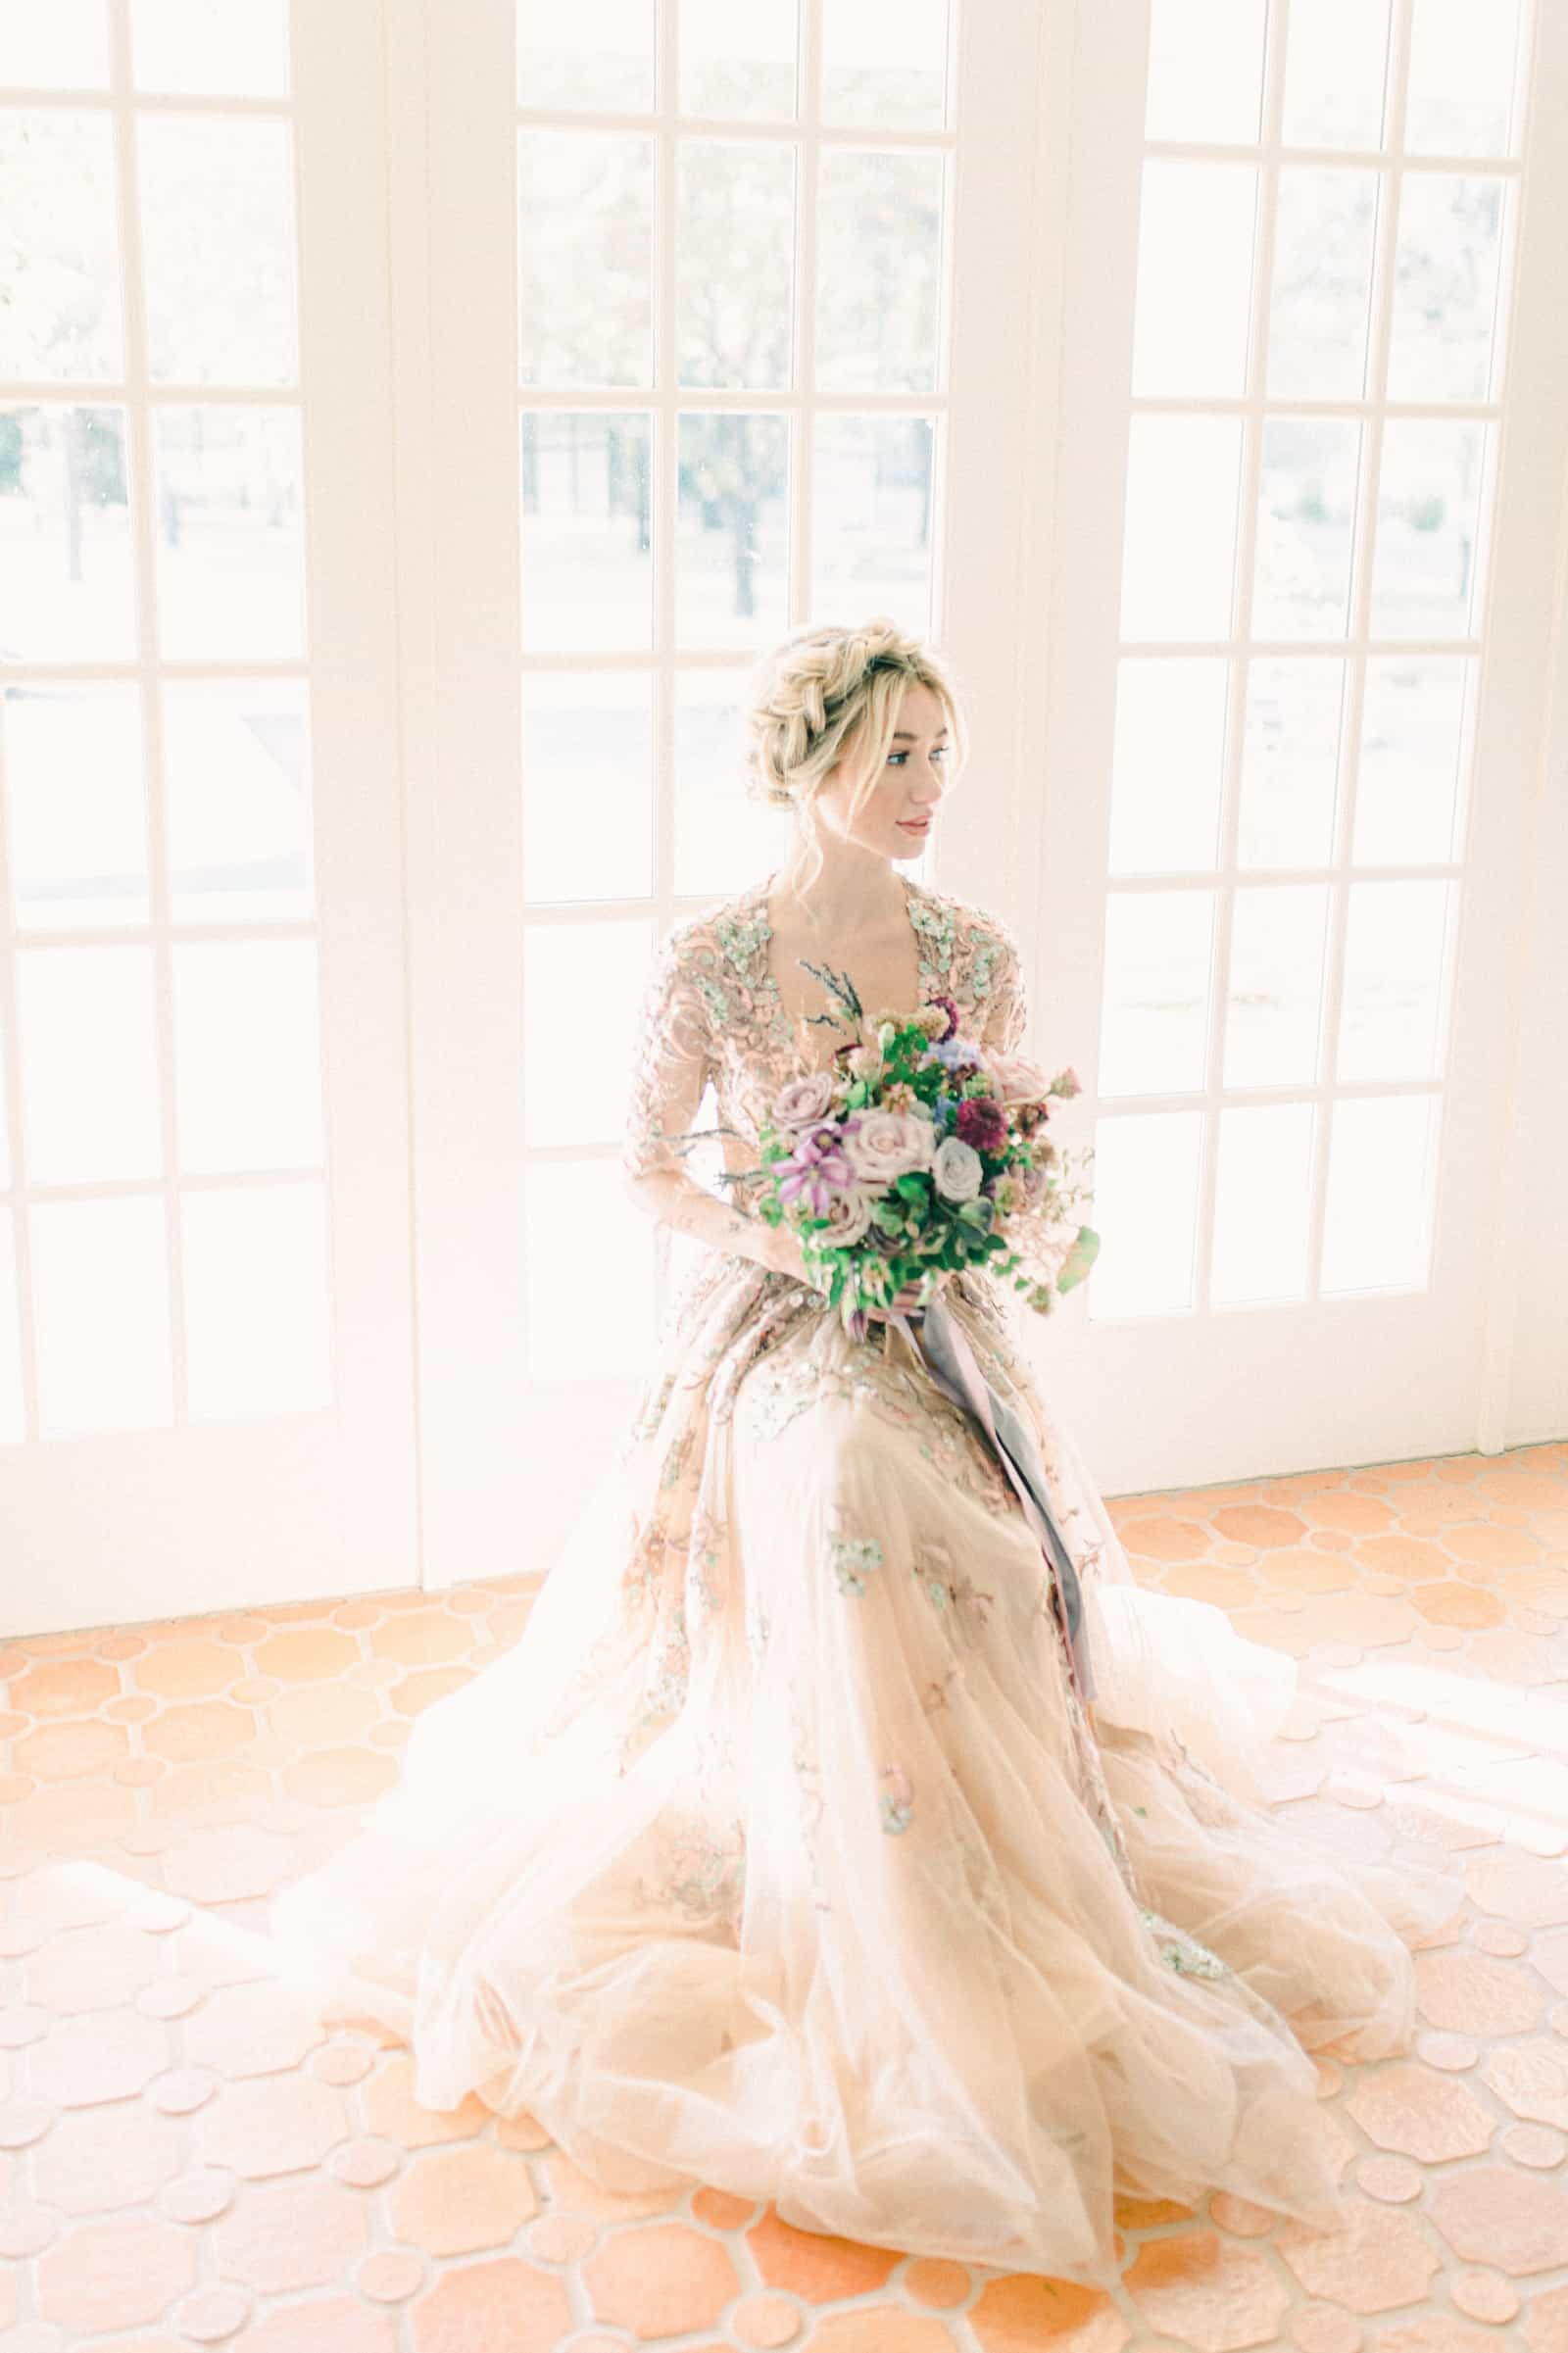 Boho bride in front of large windows with purple flower bouquet